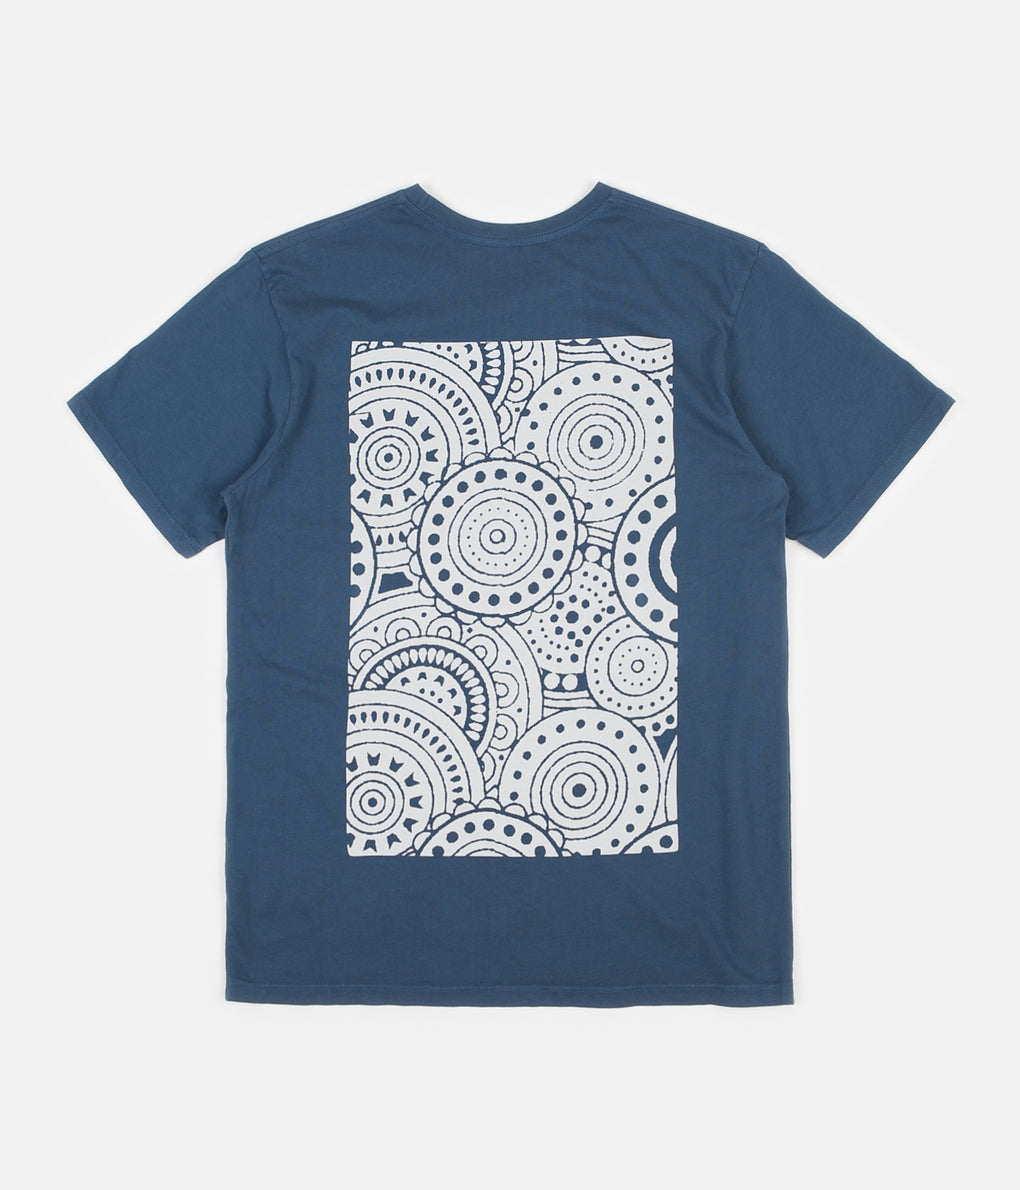 Mollusk Group T-Shirt - Navy Indigo